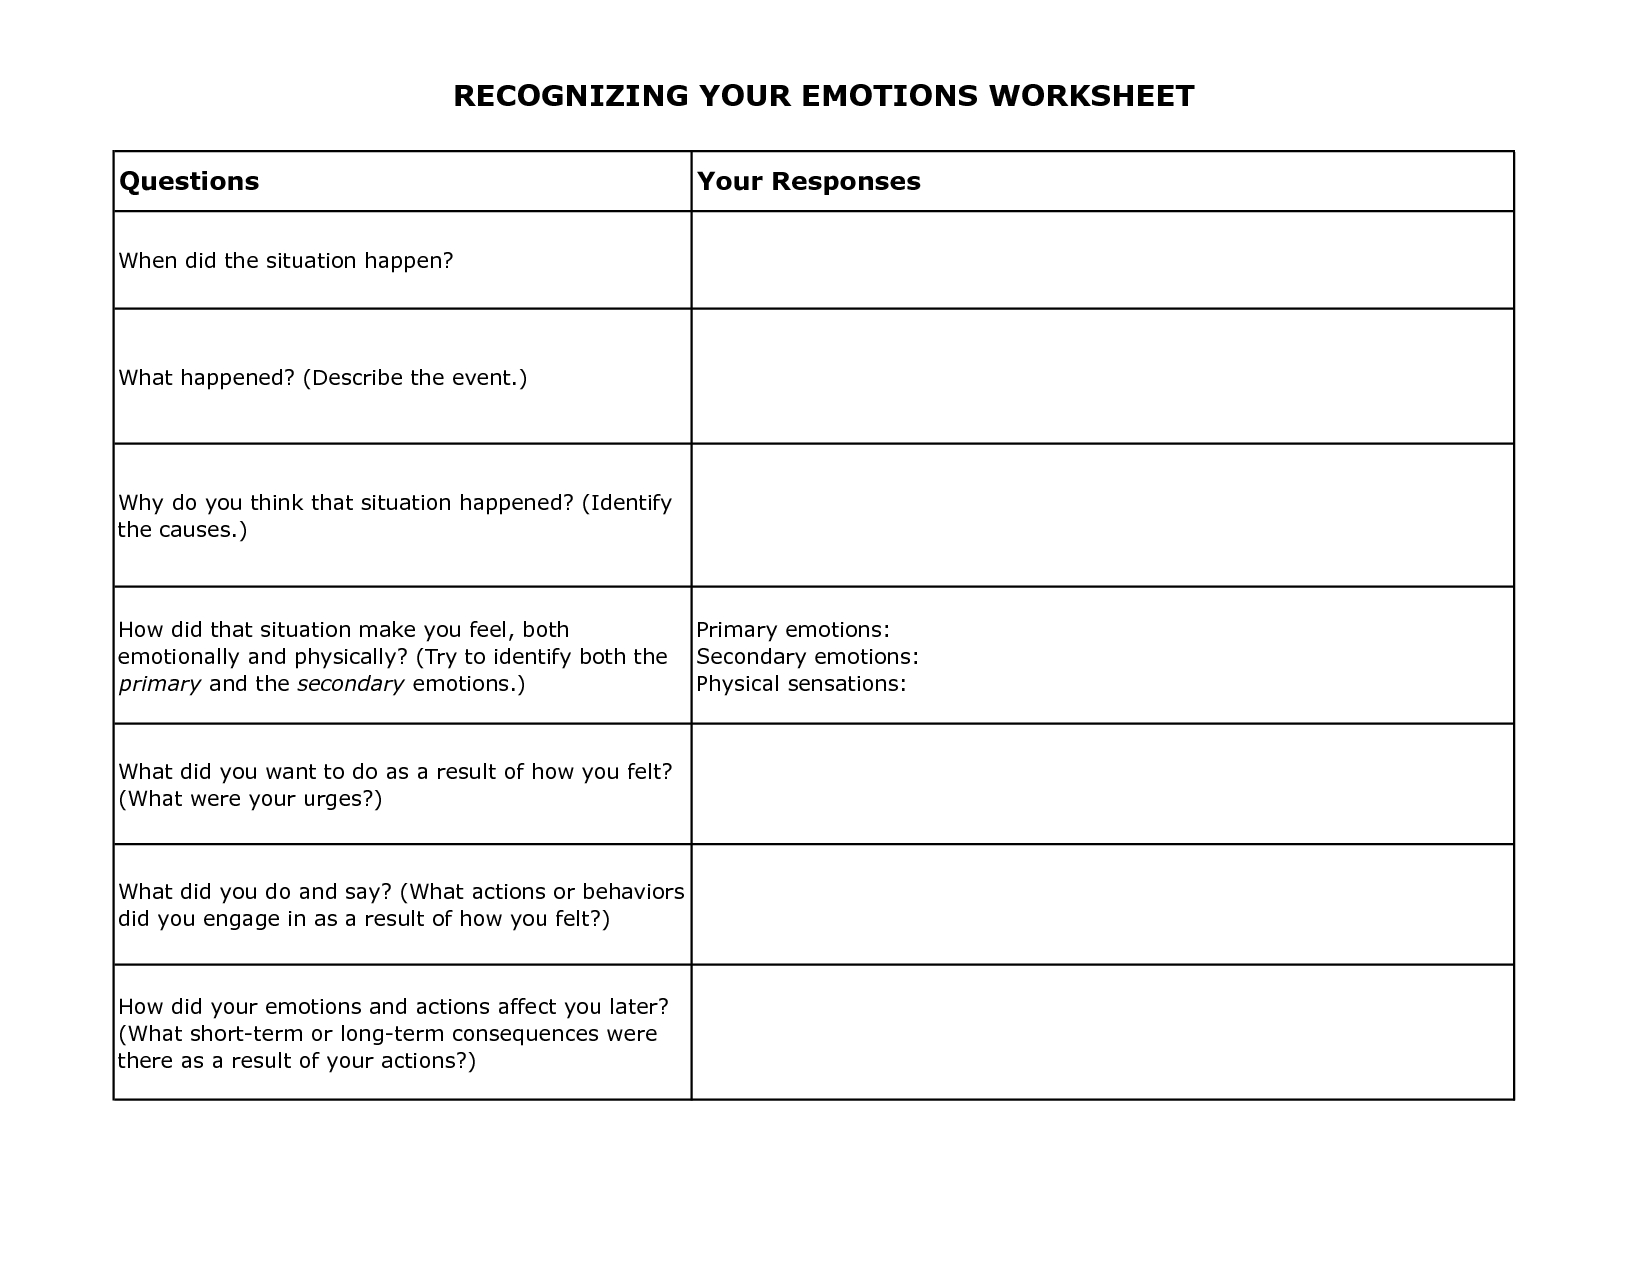 Free Printable Dbt Worksheets   Recognizing Your Emotions Worksheet - Free Printable Coping Skills Worksheets For Adults